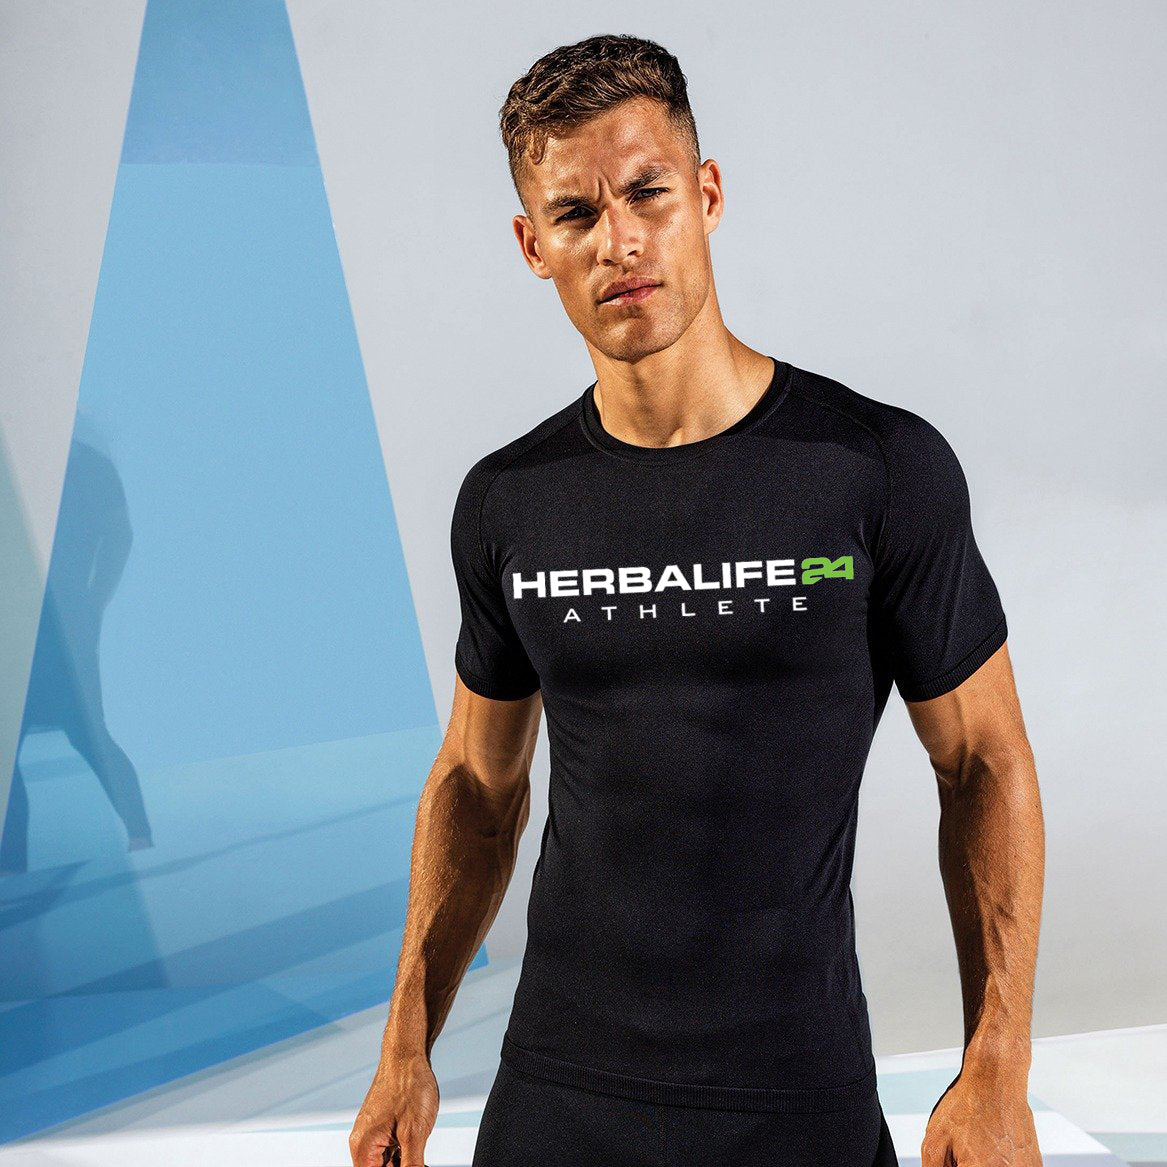 H24 Athlete: TriDri® Seamless '3D Fit' Multi-Sport Performance Short Sleeve Top (Printed Both Sides)